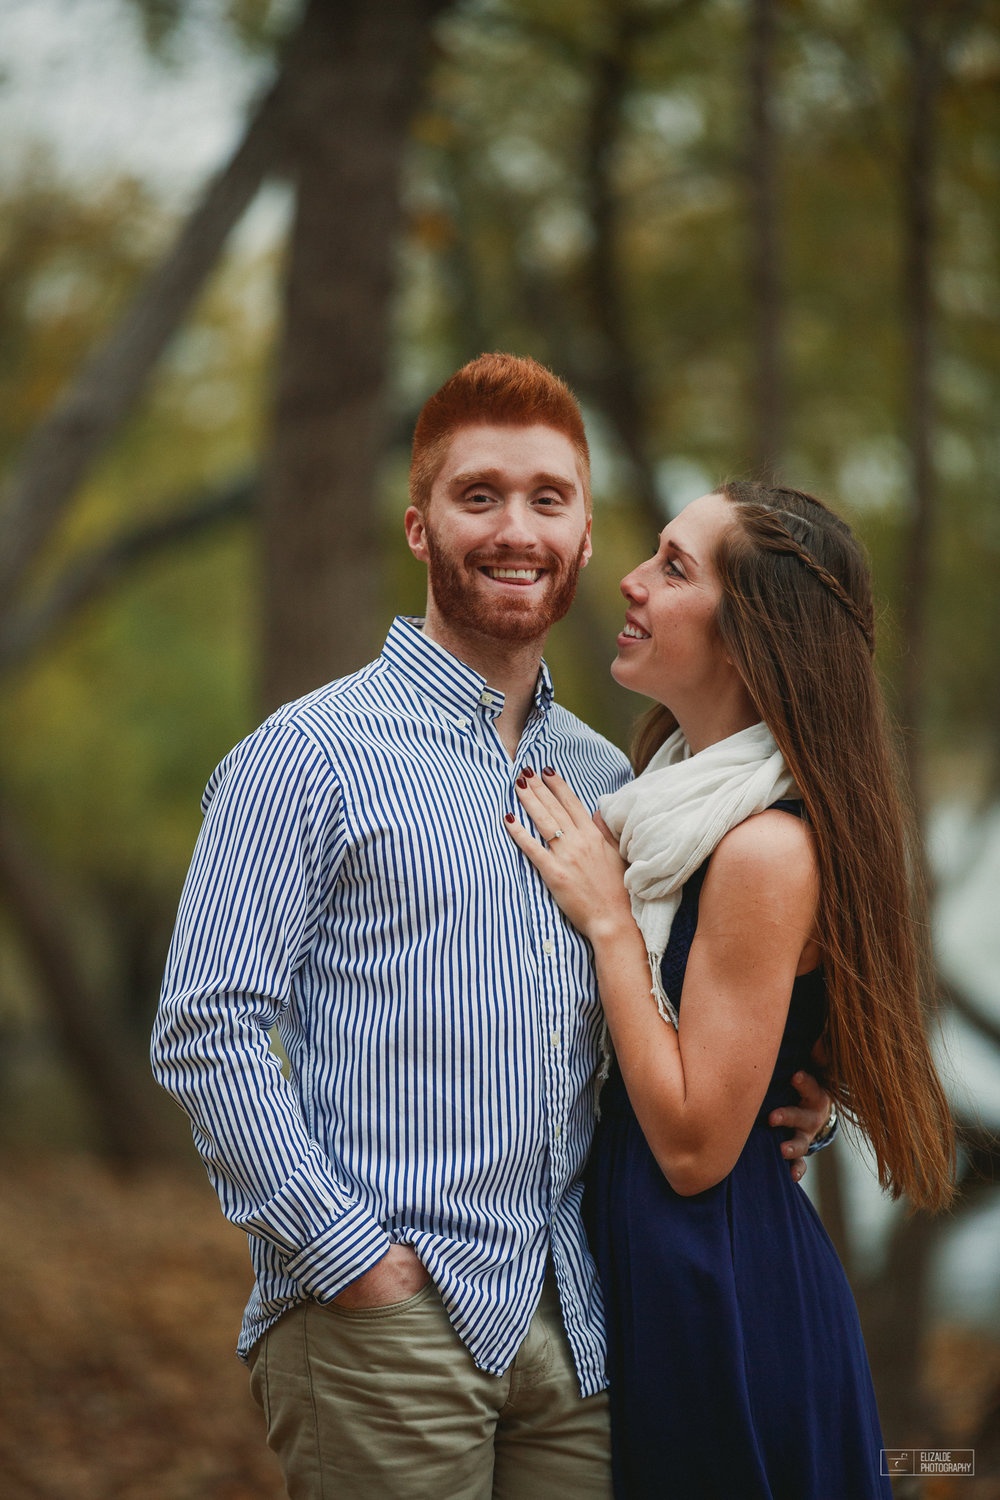 Engagement session_Engagement_Dallas photographer_Denton Photographer_elizalde photography_DFW wedding photographer_wedding (14 of 24).jpg